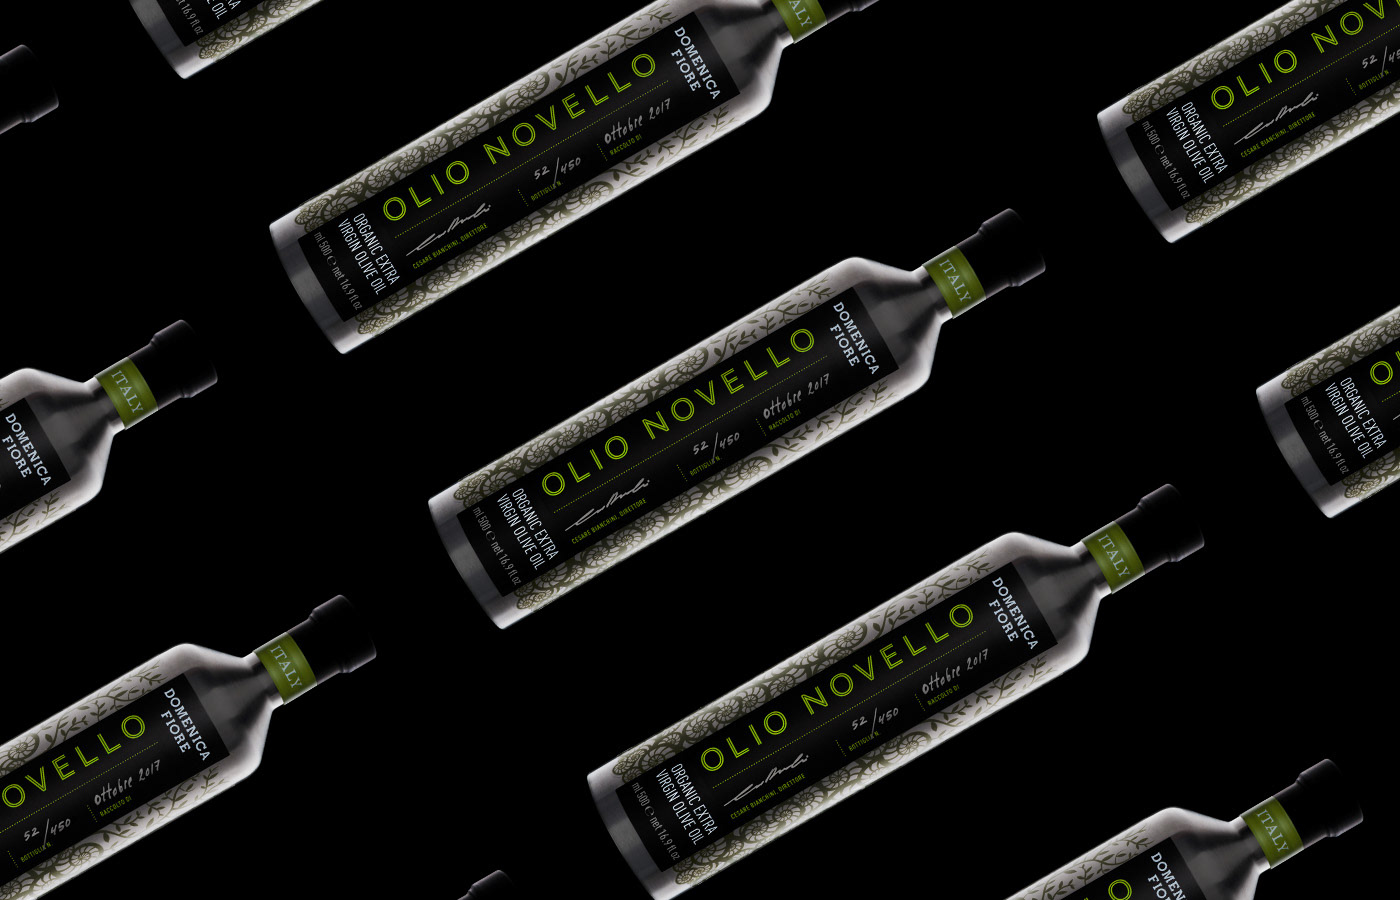 olive oil evoo Italy vancouver design package Packaging Stainless steel